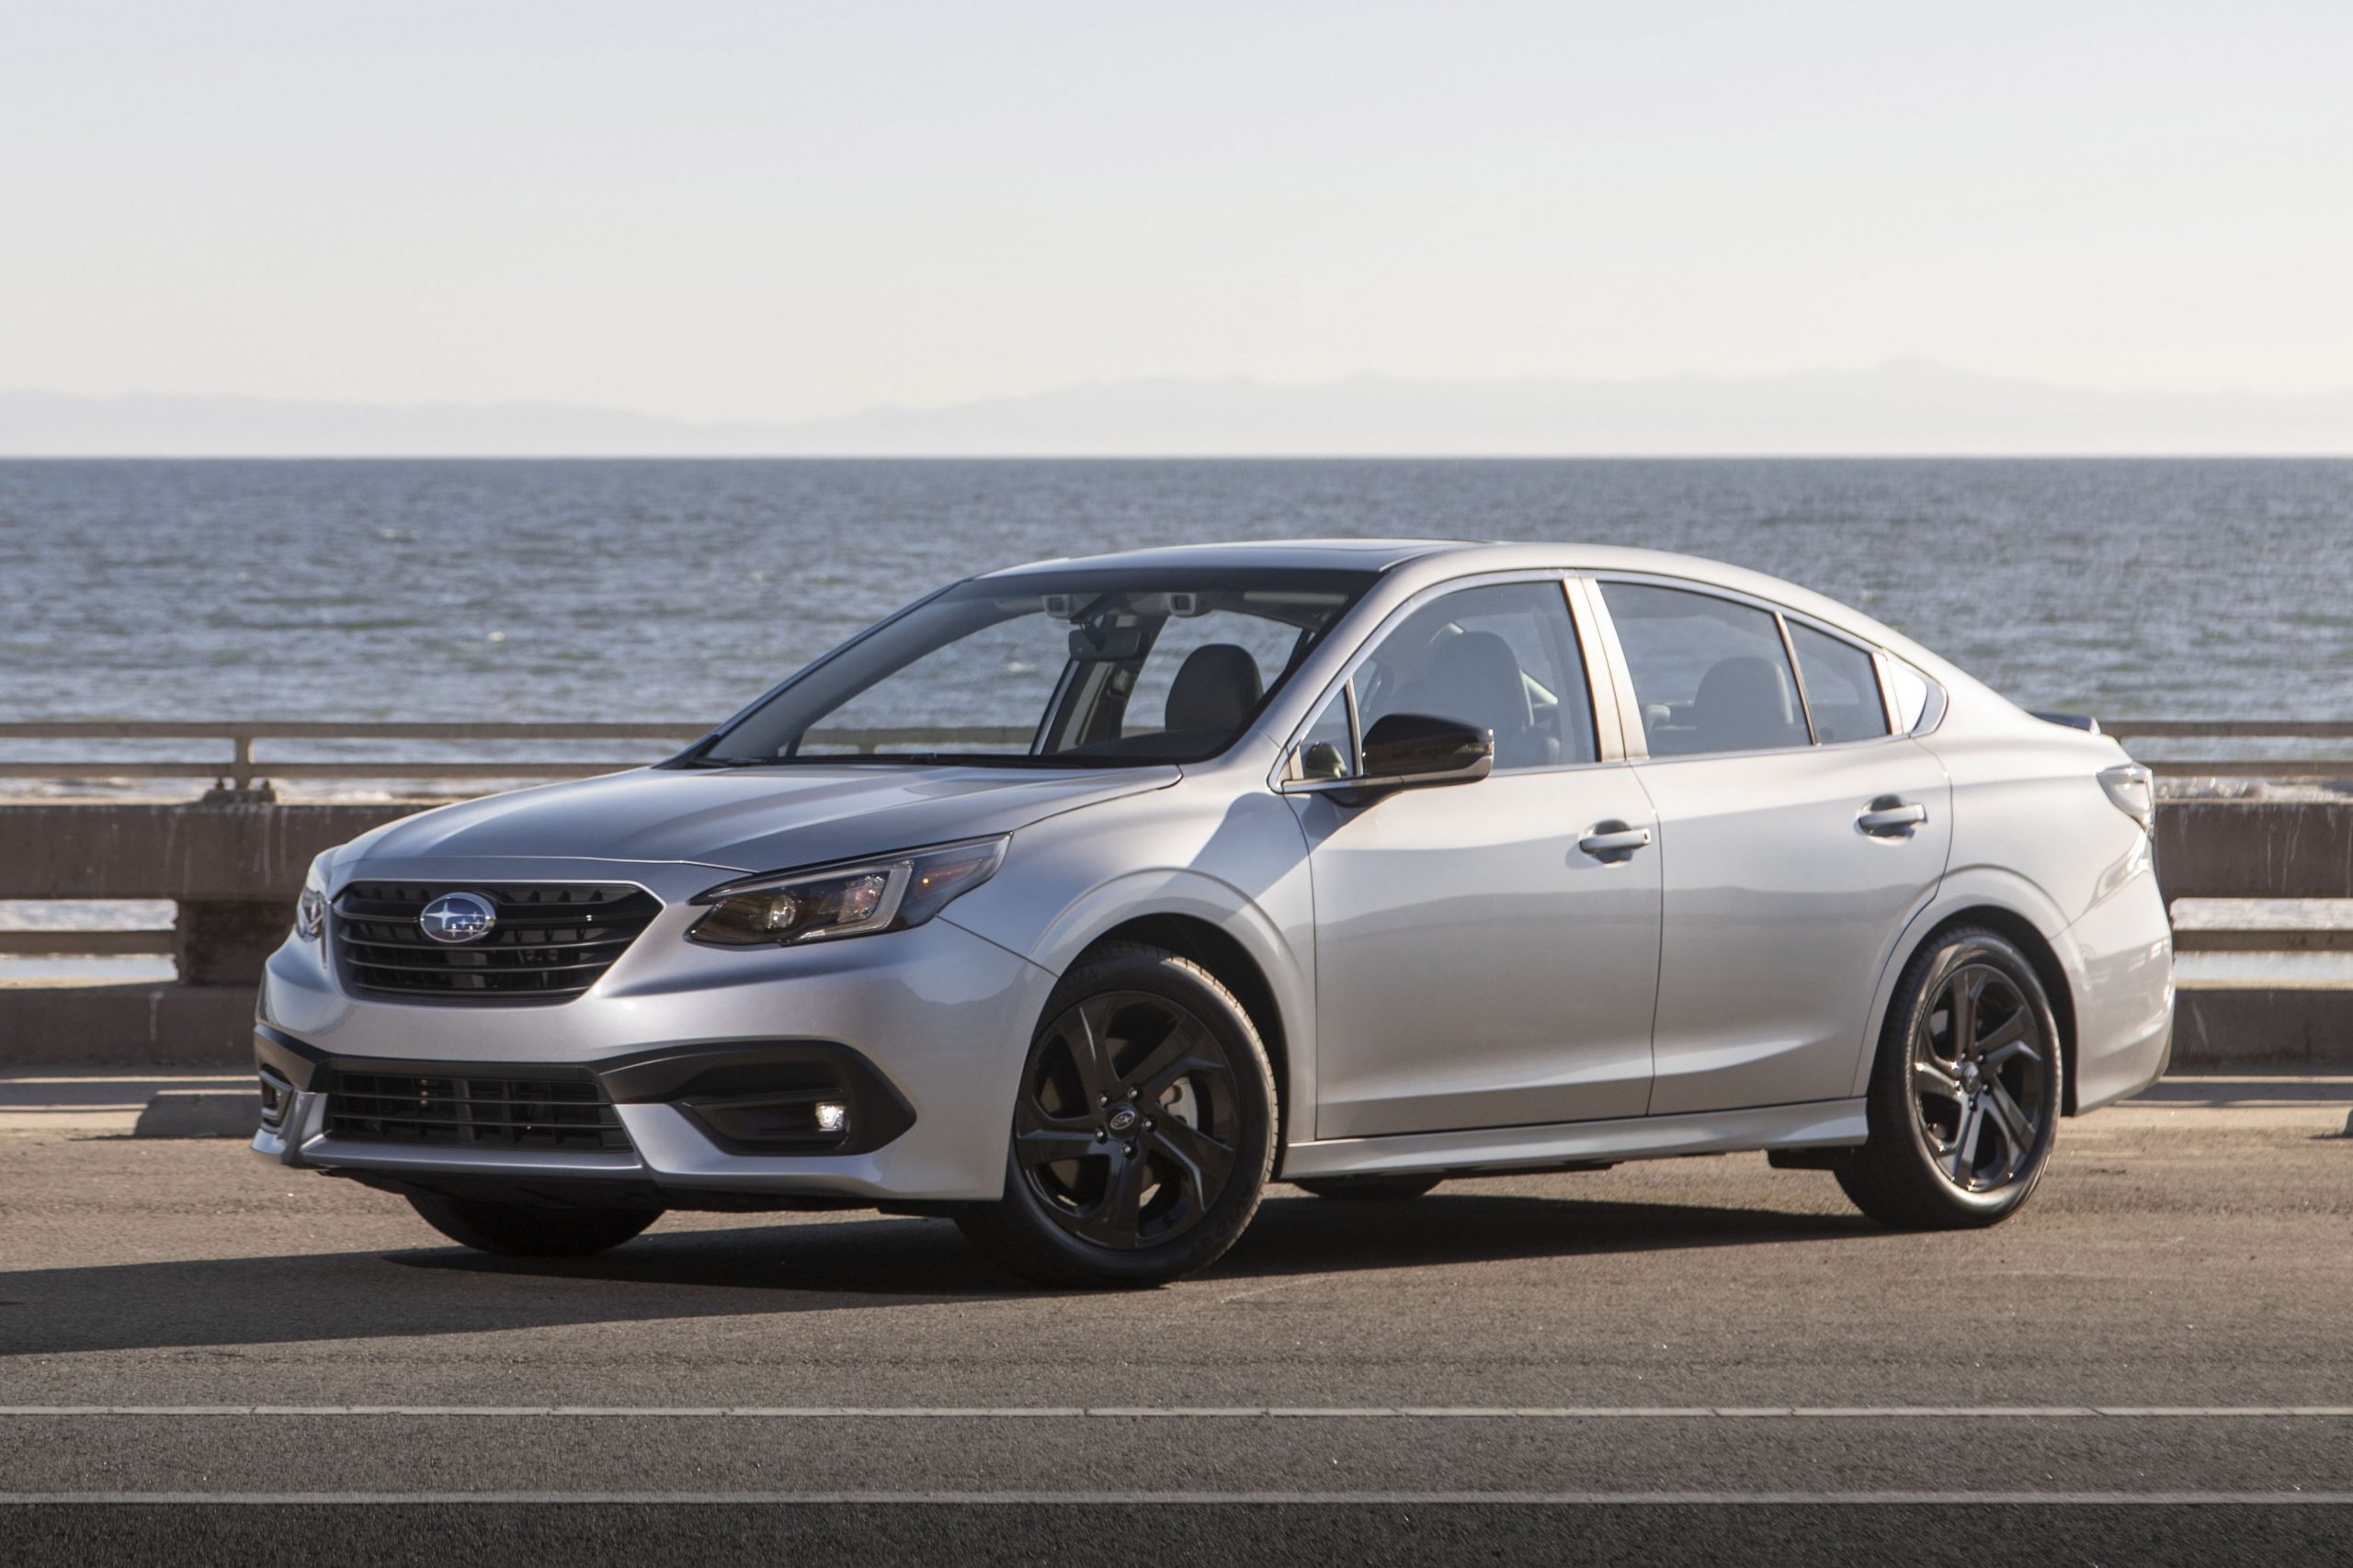 4 Subaru Legacy Review, Pricing, and Specs